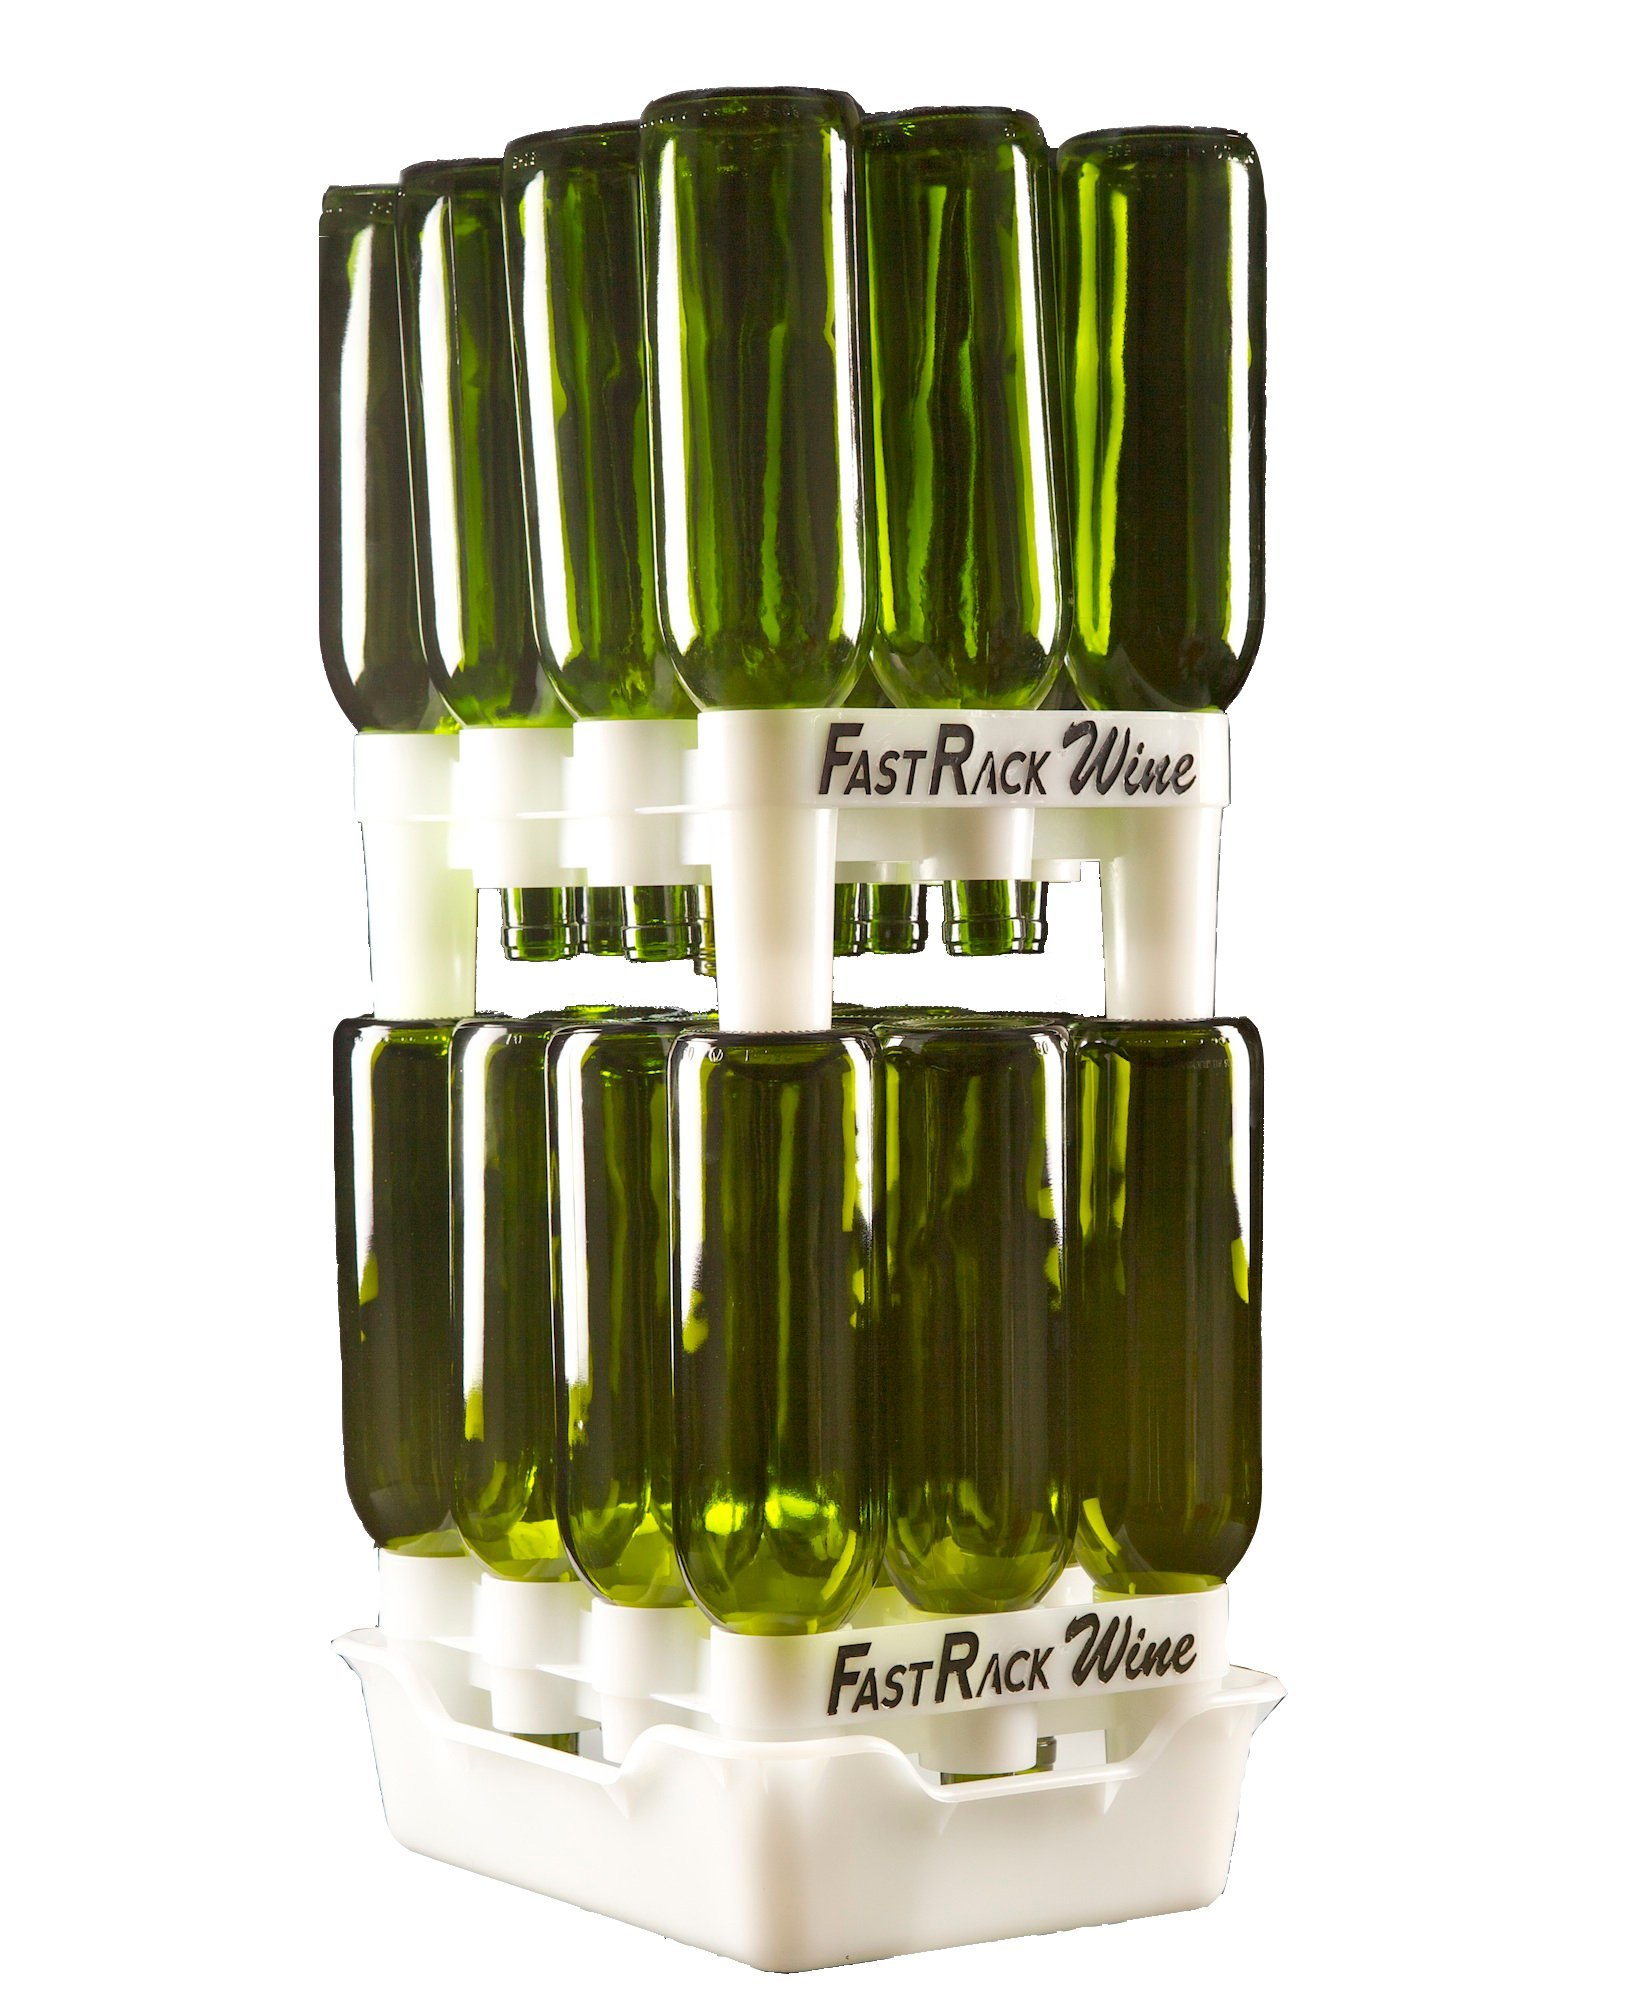 FastFerment frw FastRack Bomber Tray Wine bottle cleaning and drying rack, FastRack12 Two Racks & One, White by FASTFERMENT